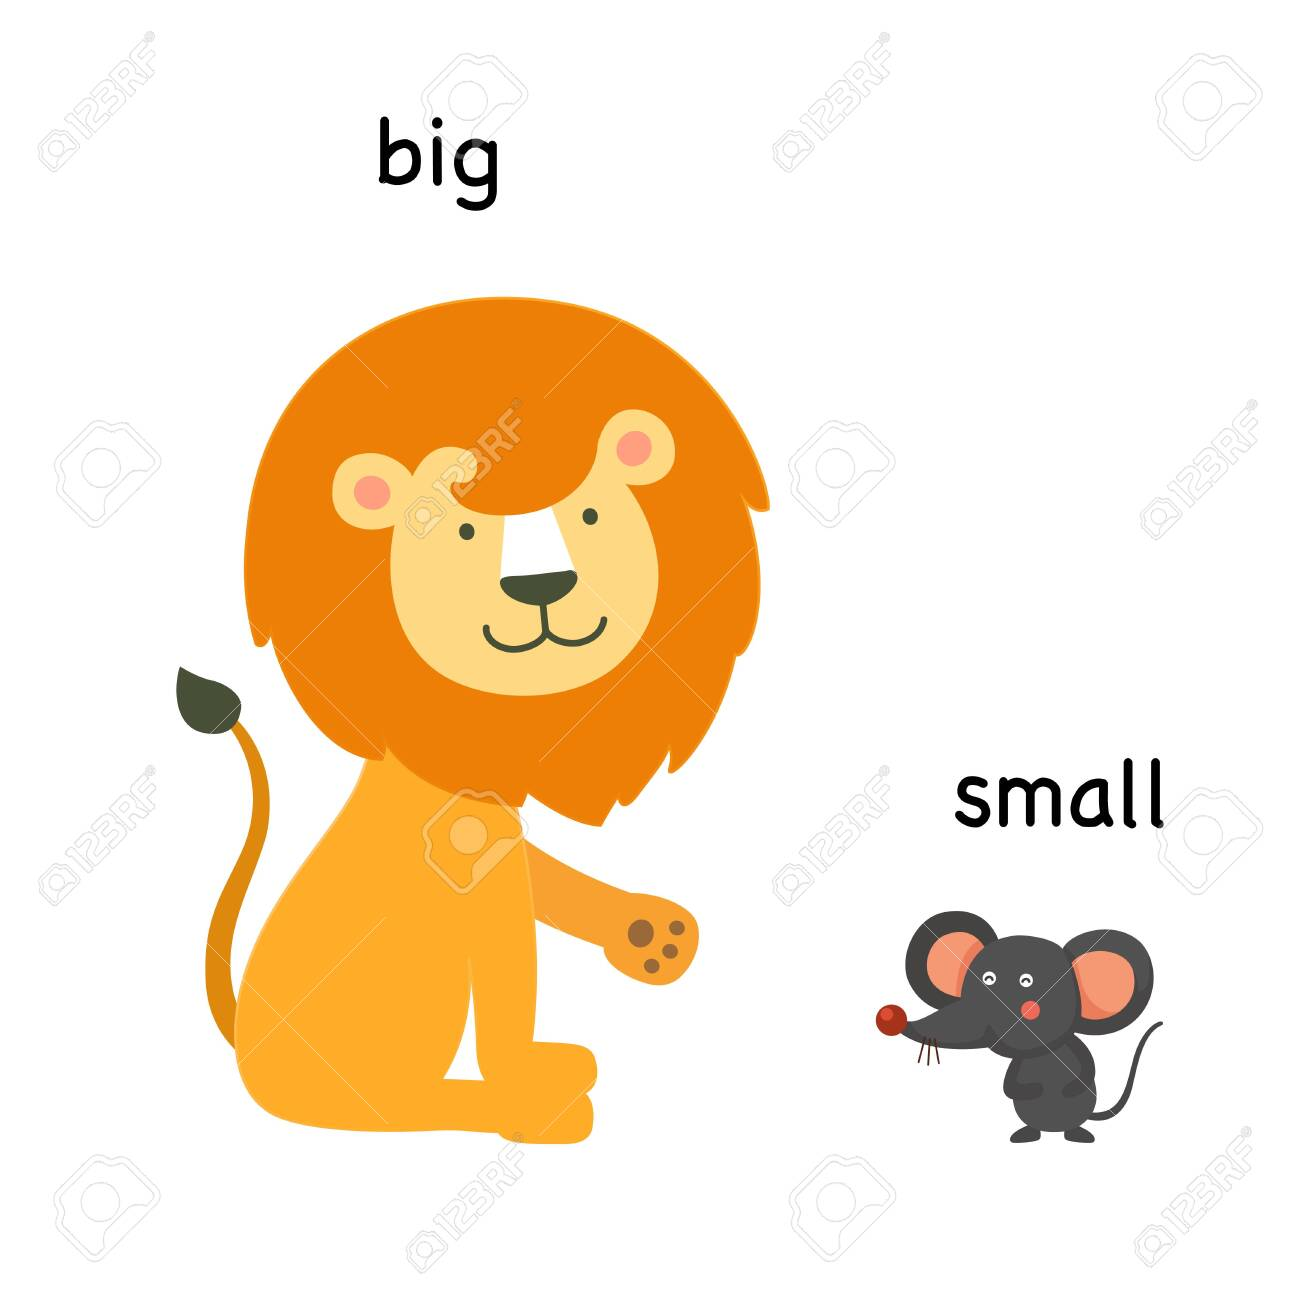 9178ea4c6ca4 Opposite big and small vector illustration